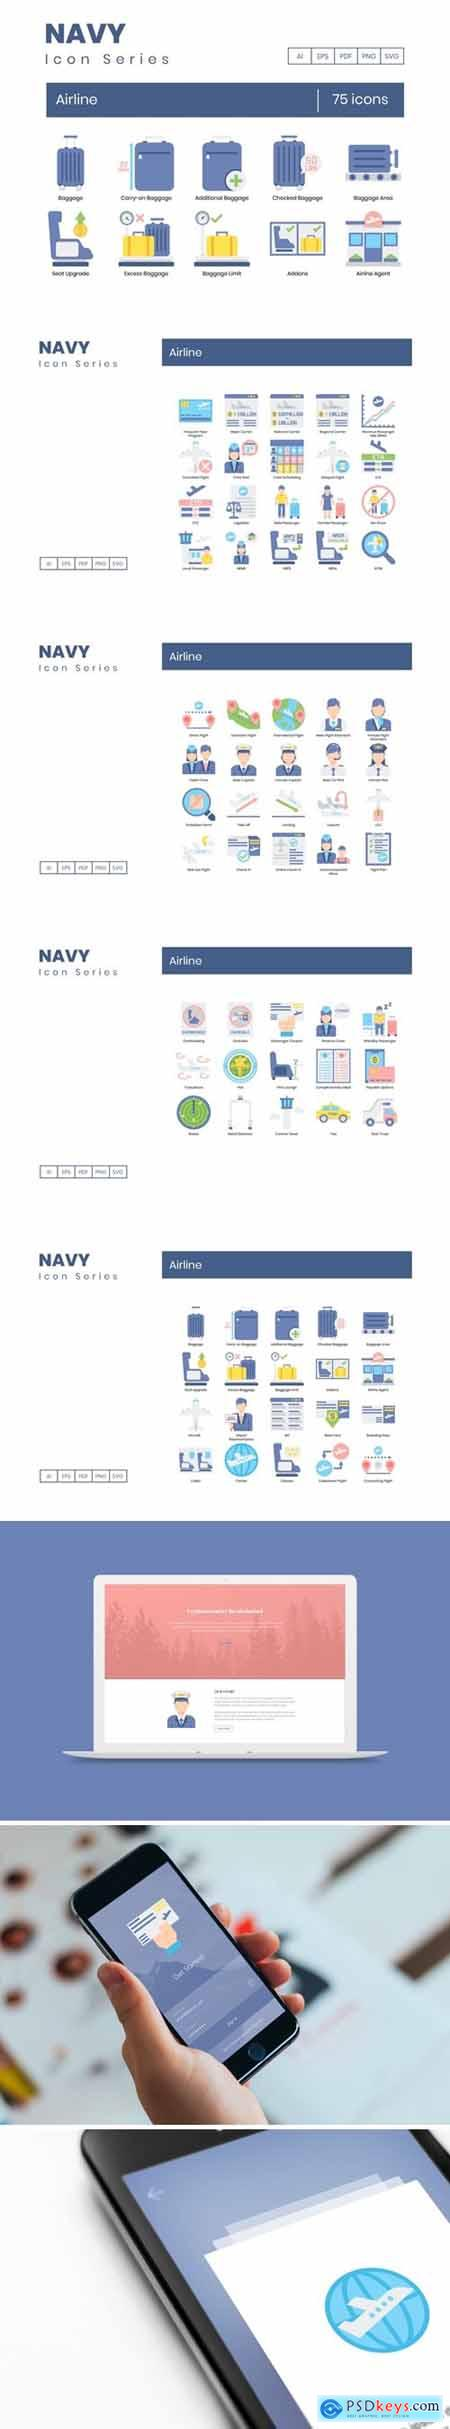 75 Airline Icons - Navy Series